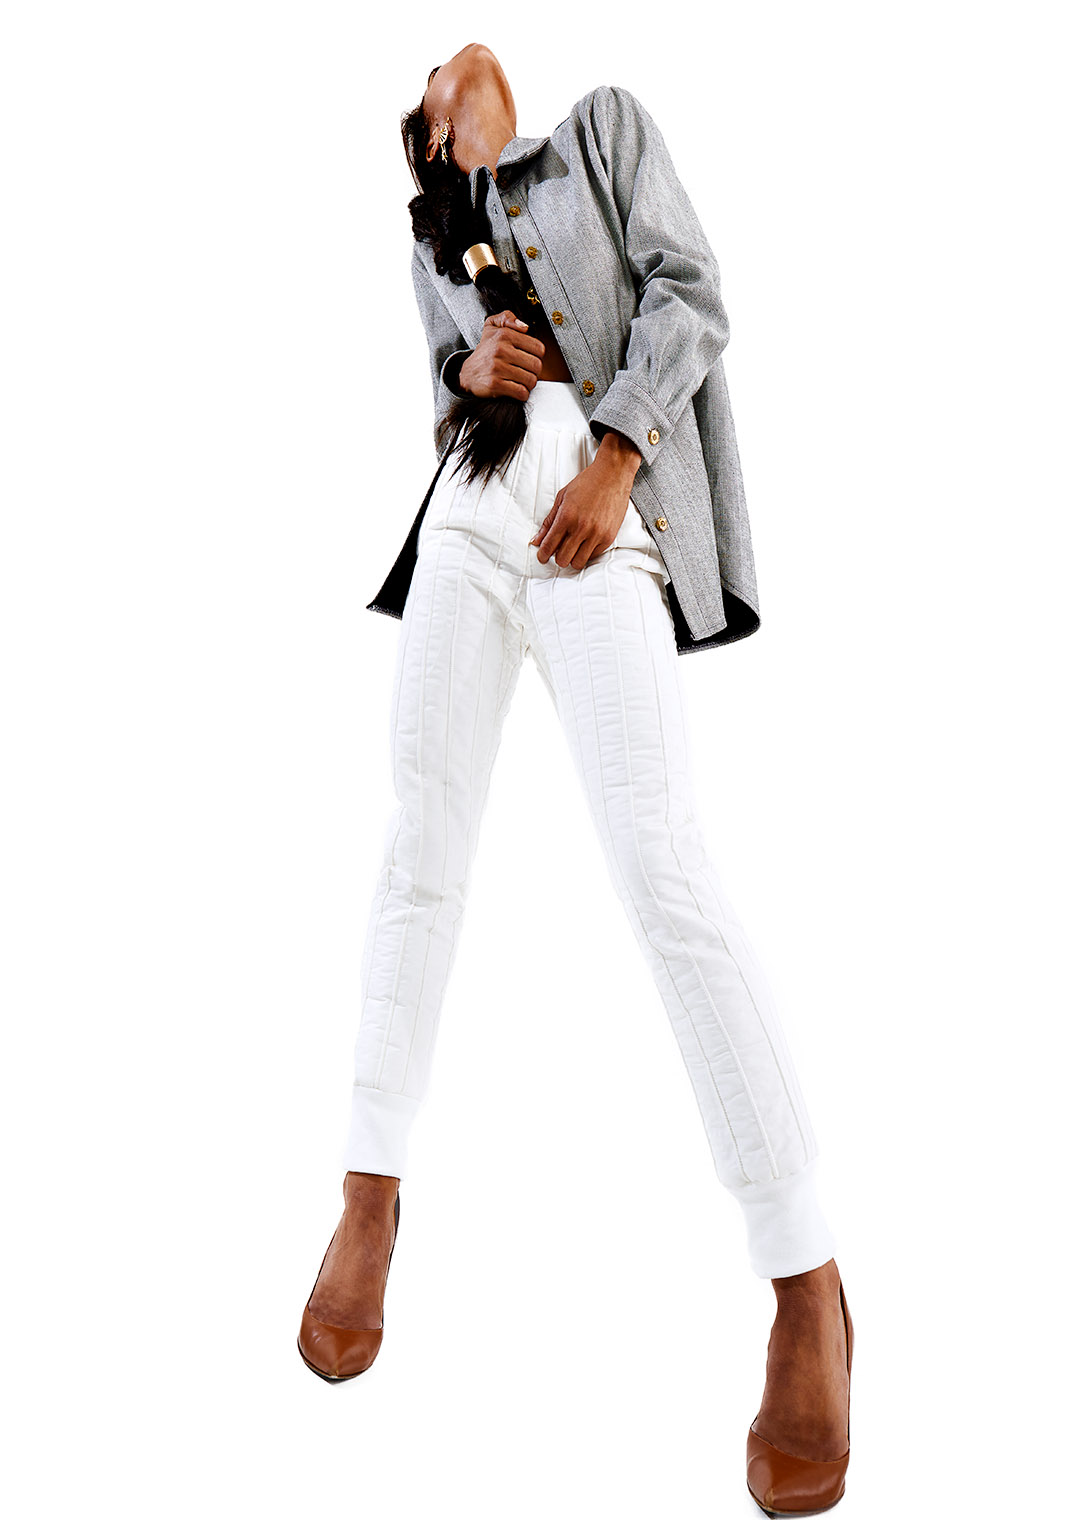 fashion model in white pants and gray jacket in dancing expressive pose at fashion photograph studio in Los Angeles